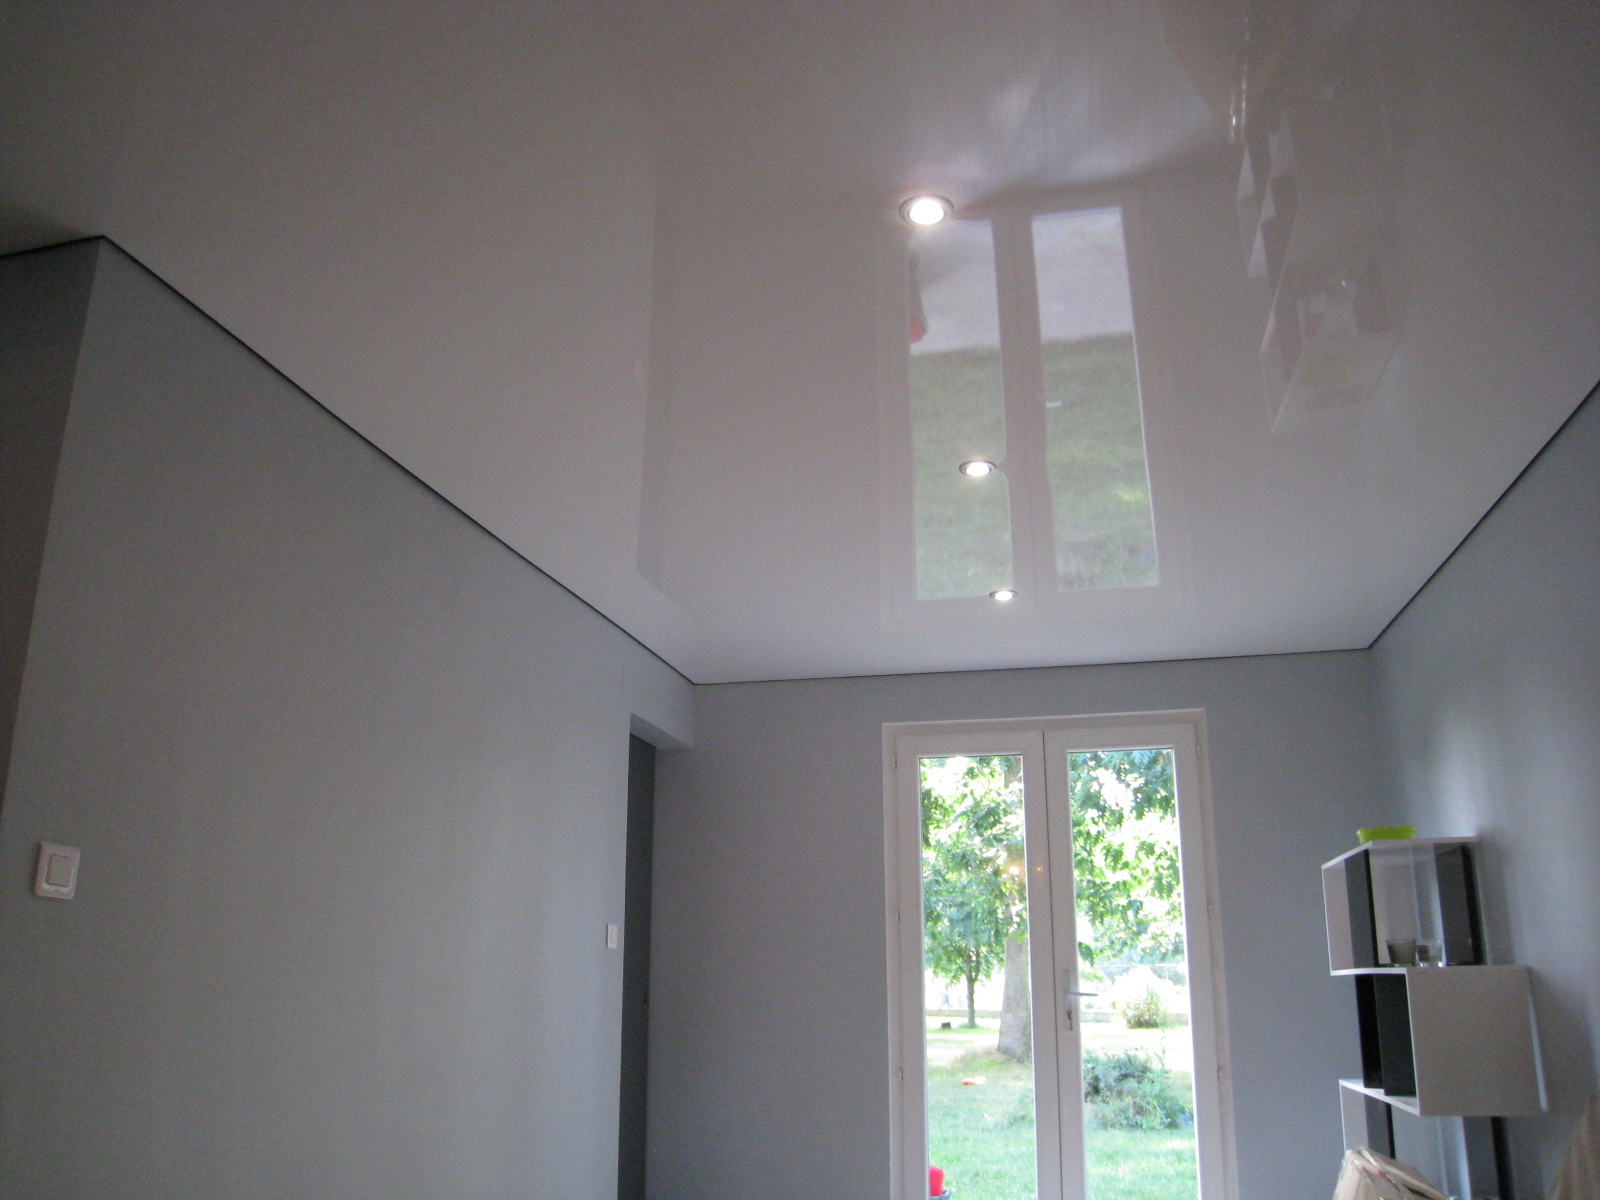 D coration r novation plafond tendu laqu by steeve mieulet for Faux plafond blanc